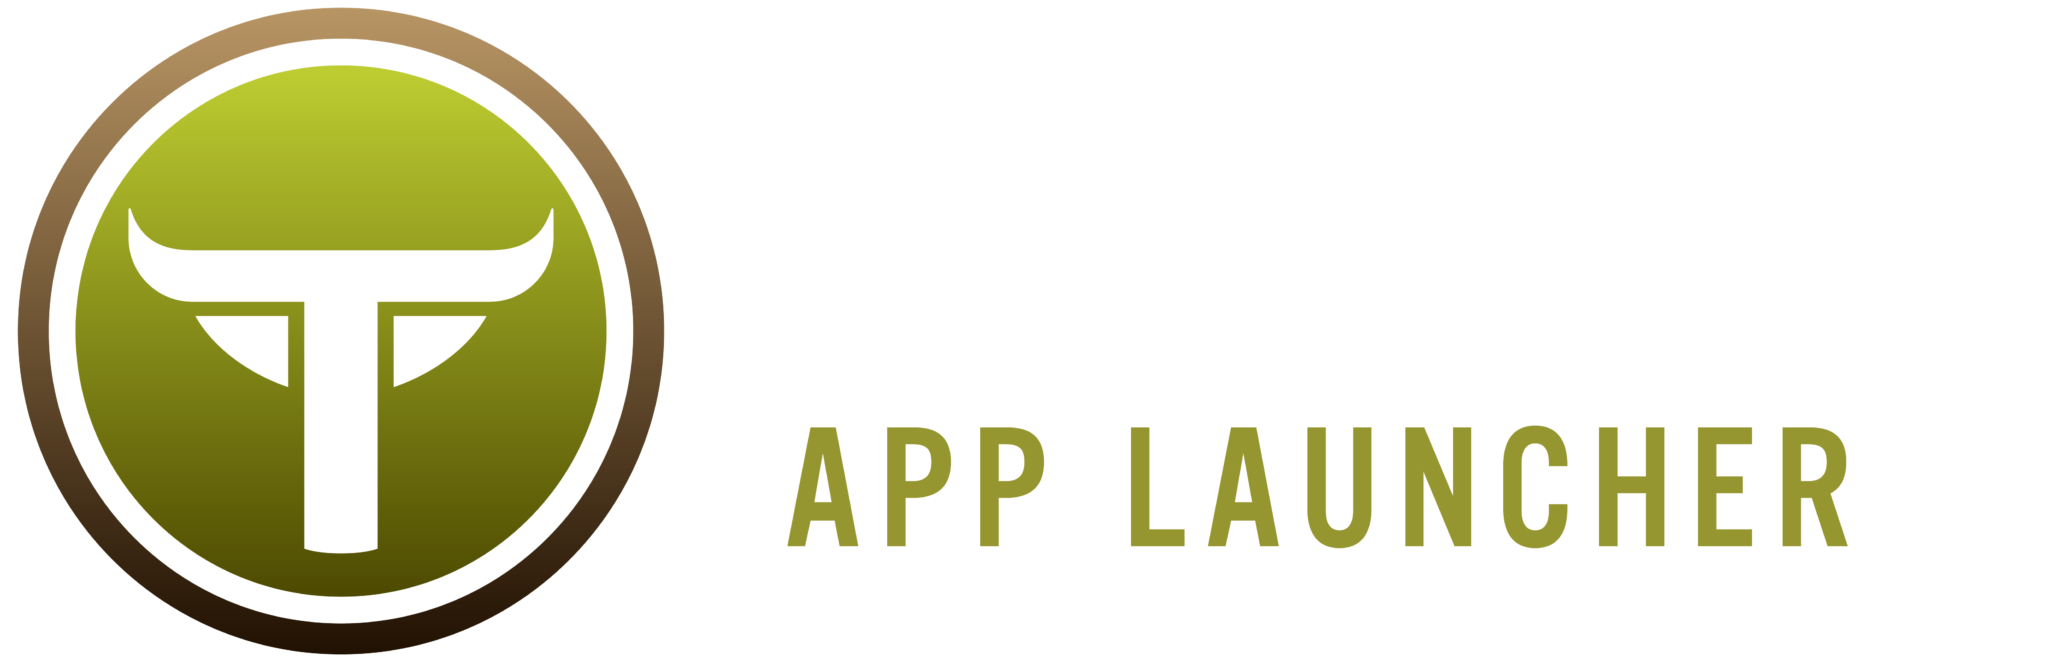 TaurusAppLauncher Horizontal WHite